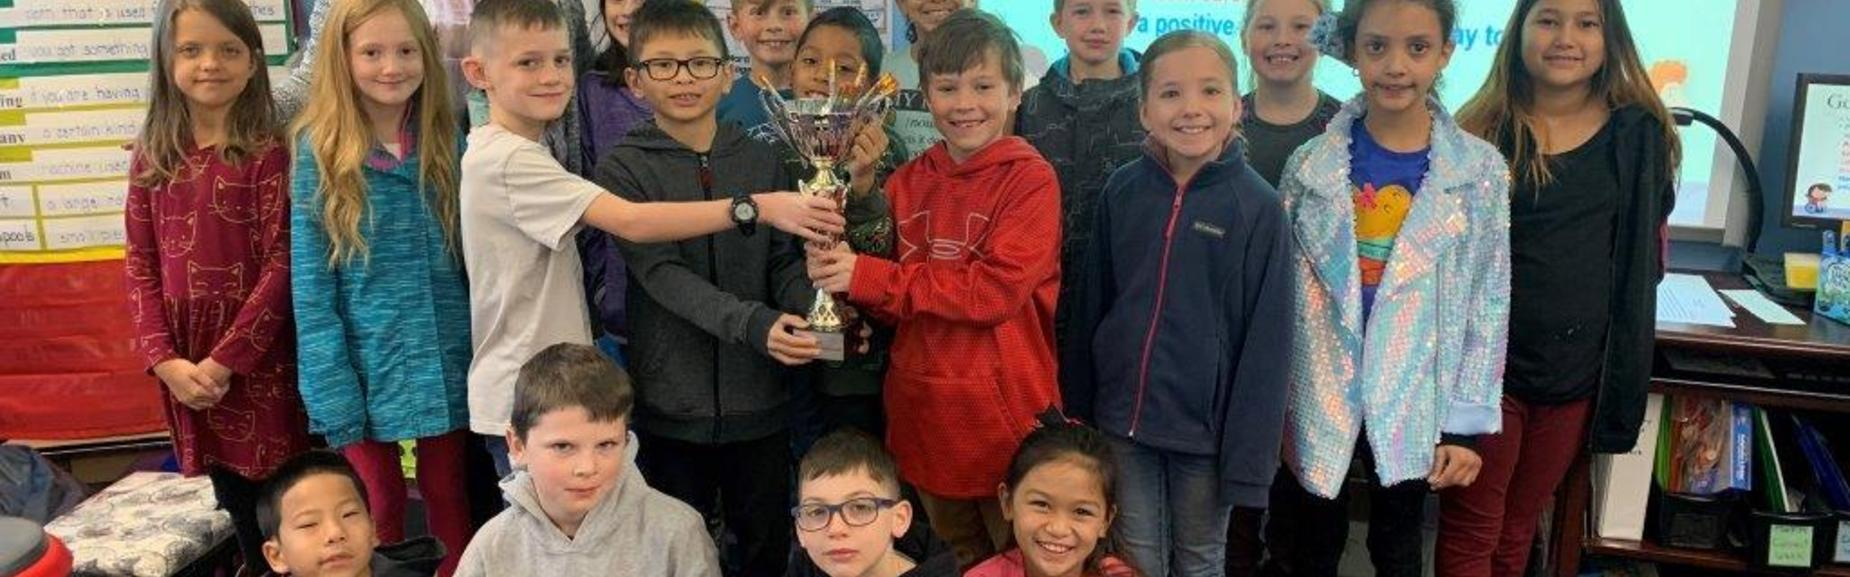 students holding attendance trophy